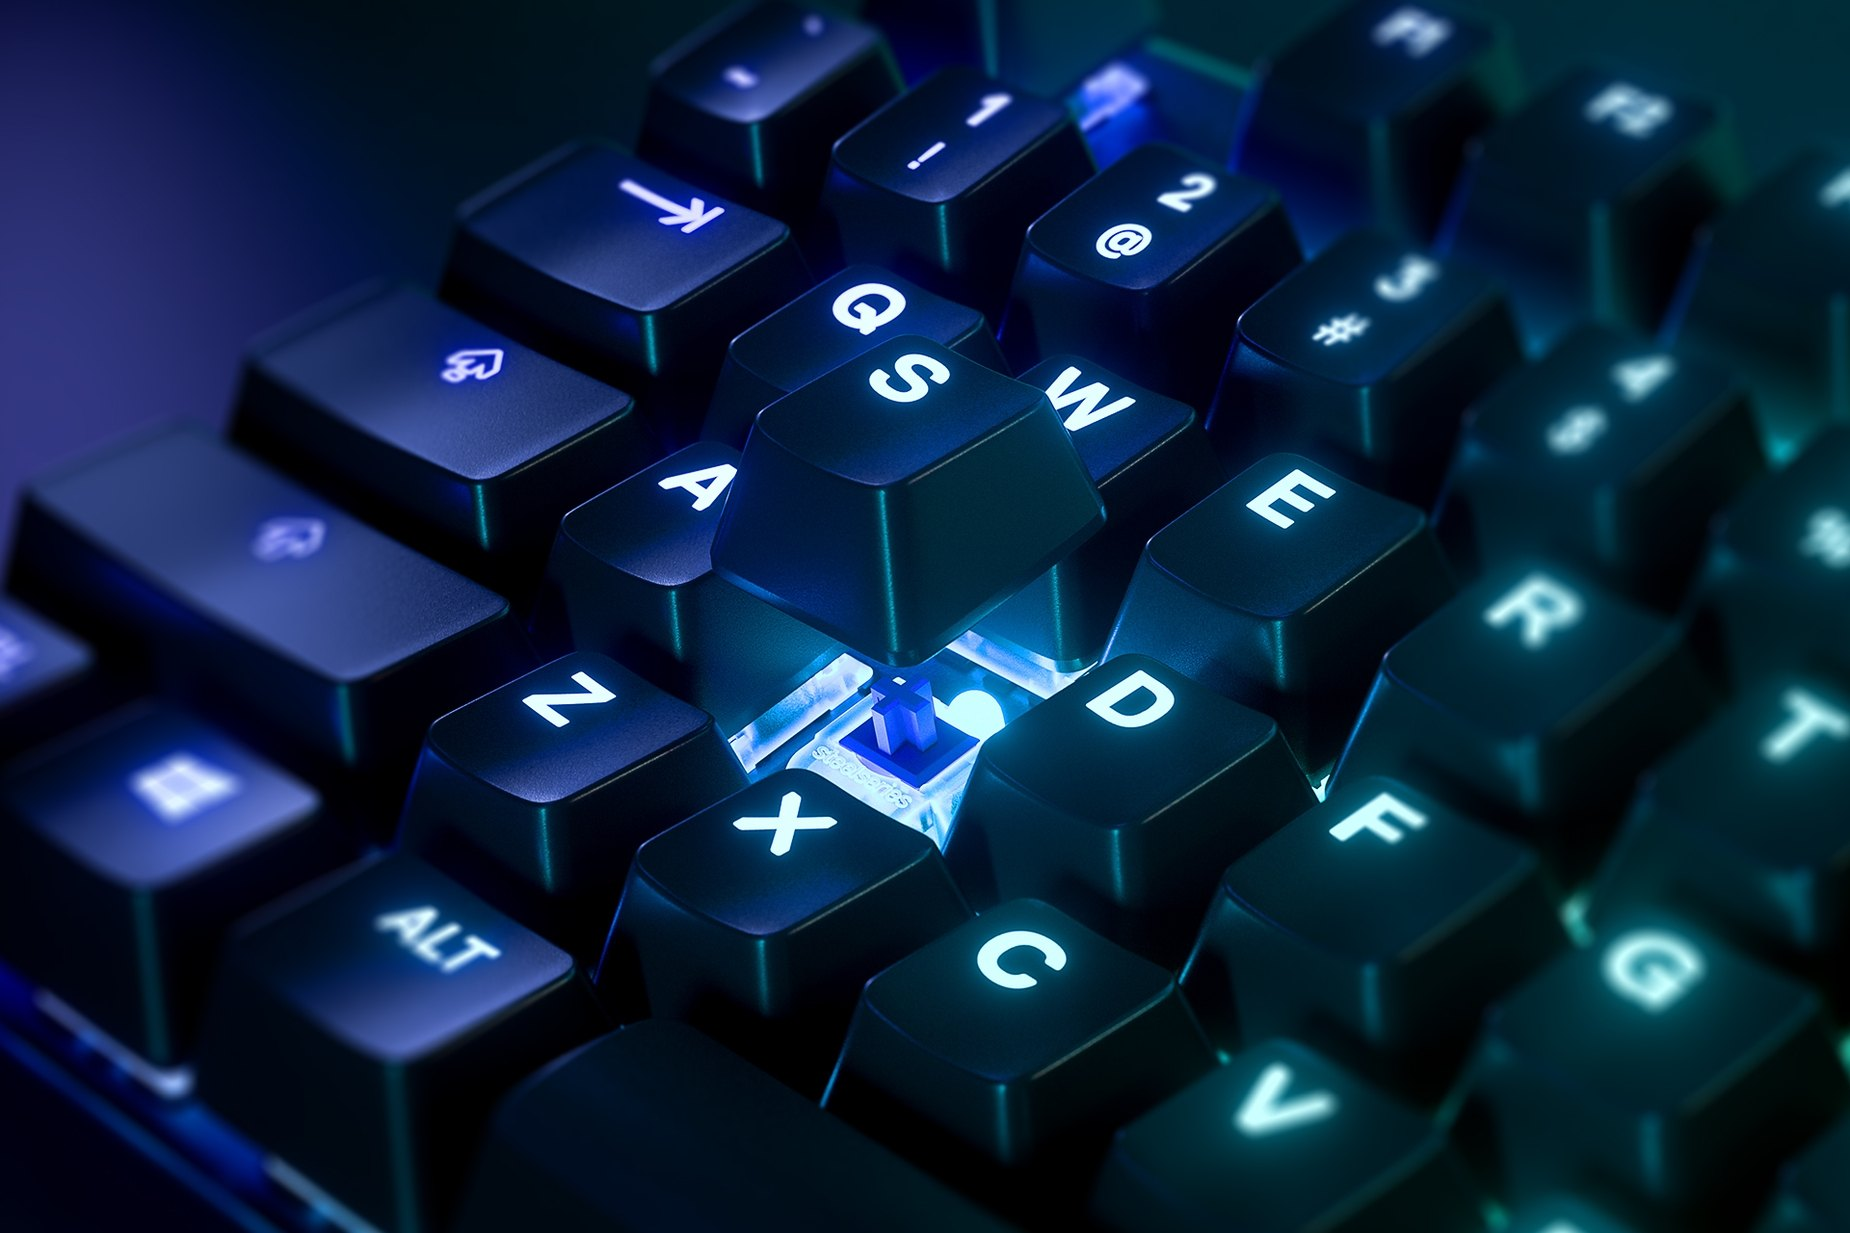 Zoomed in view of a single key on the German-Apex 7 (Blue Switch) gaming keyboard, the key is raised up to show the SteelSeries QX2 Mechanical RGB Switch underneath